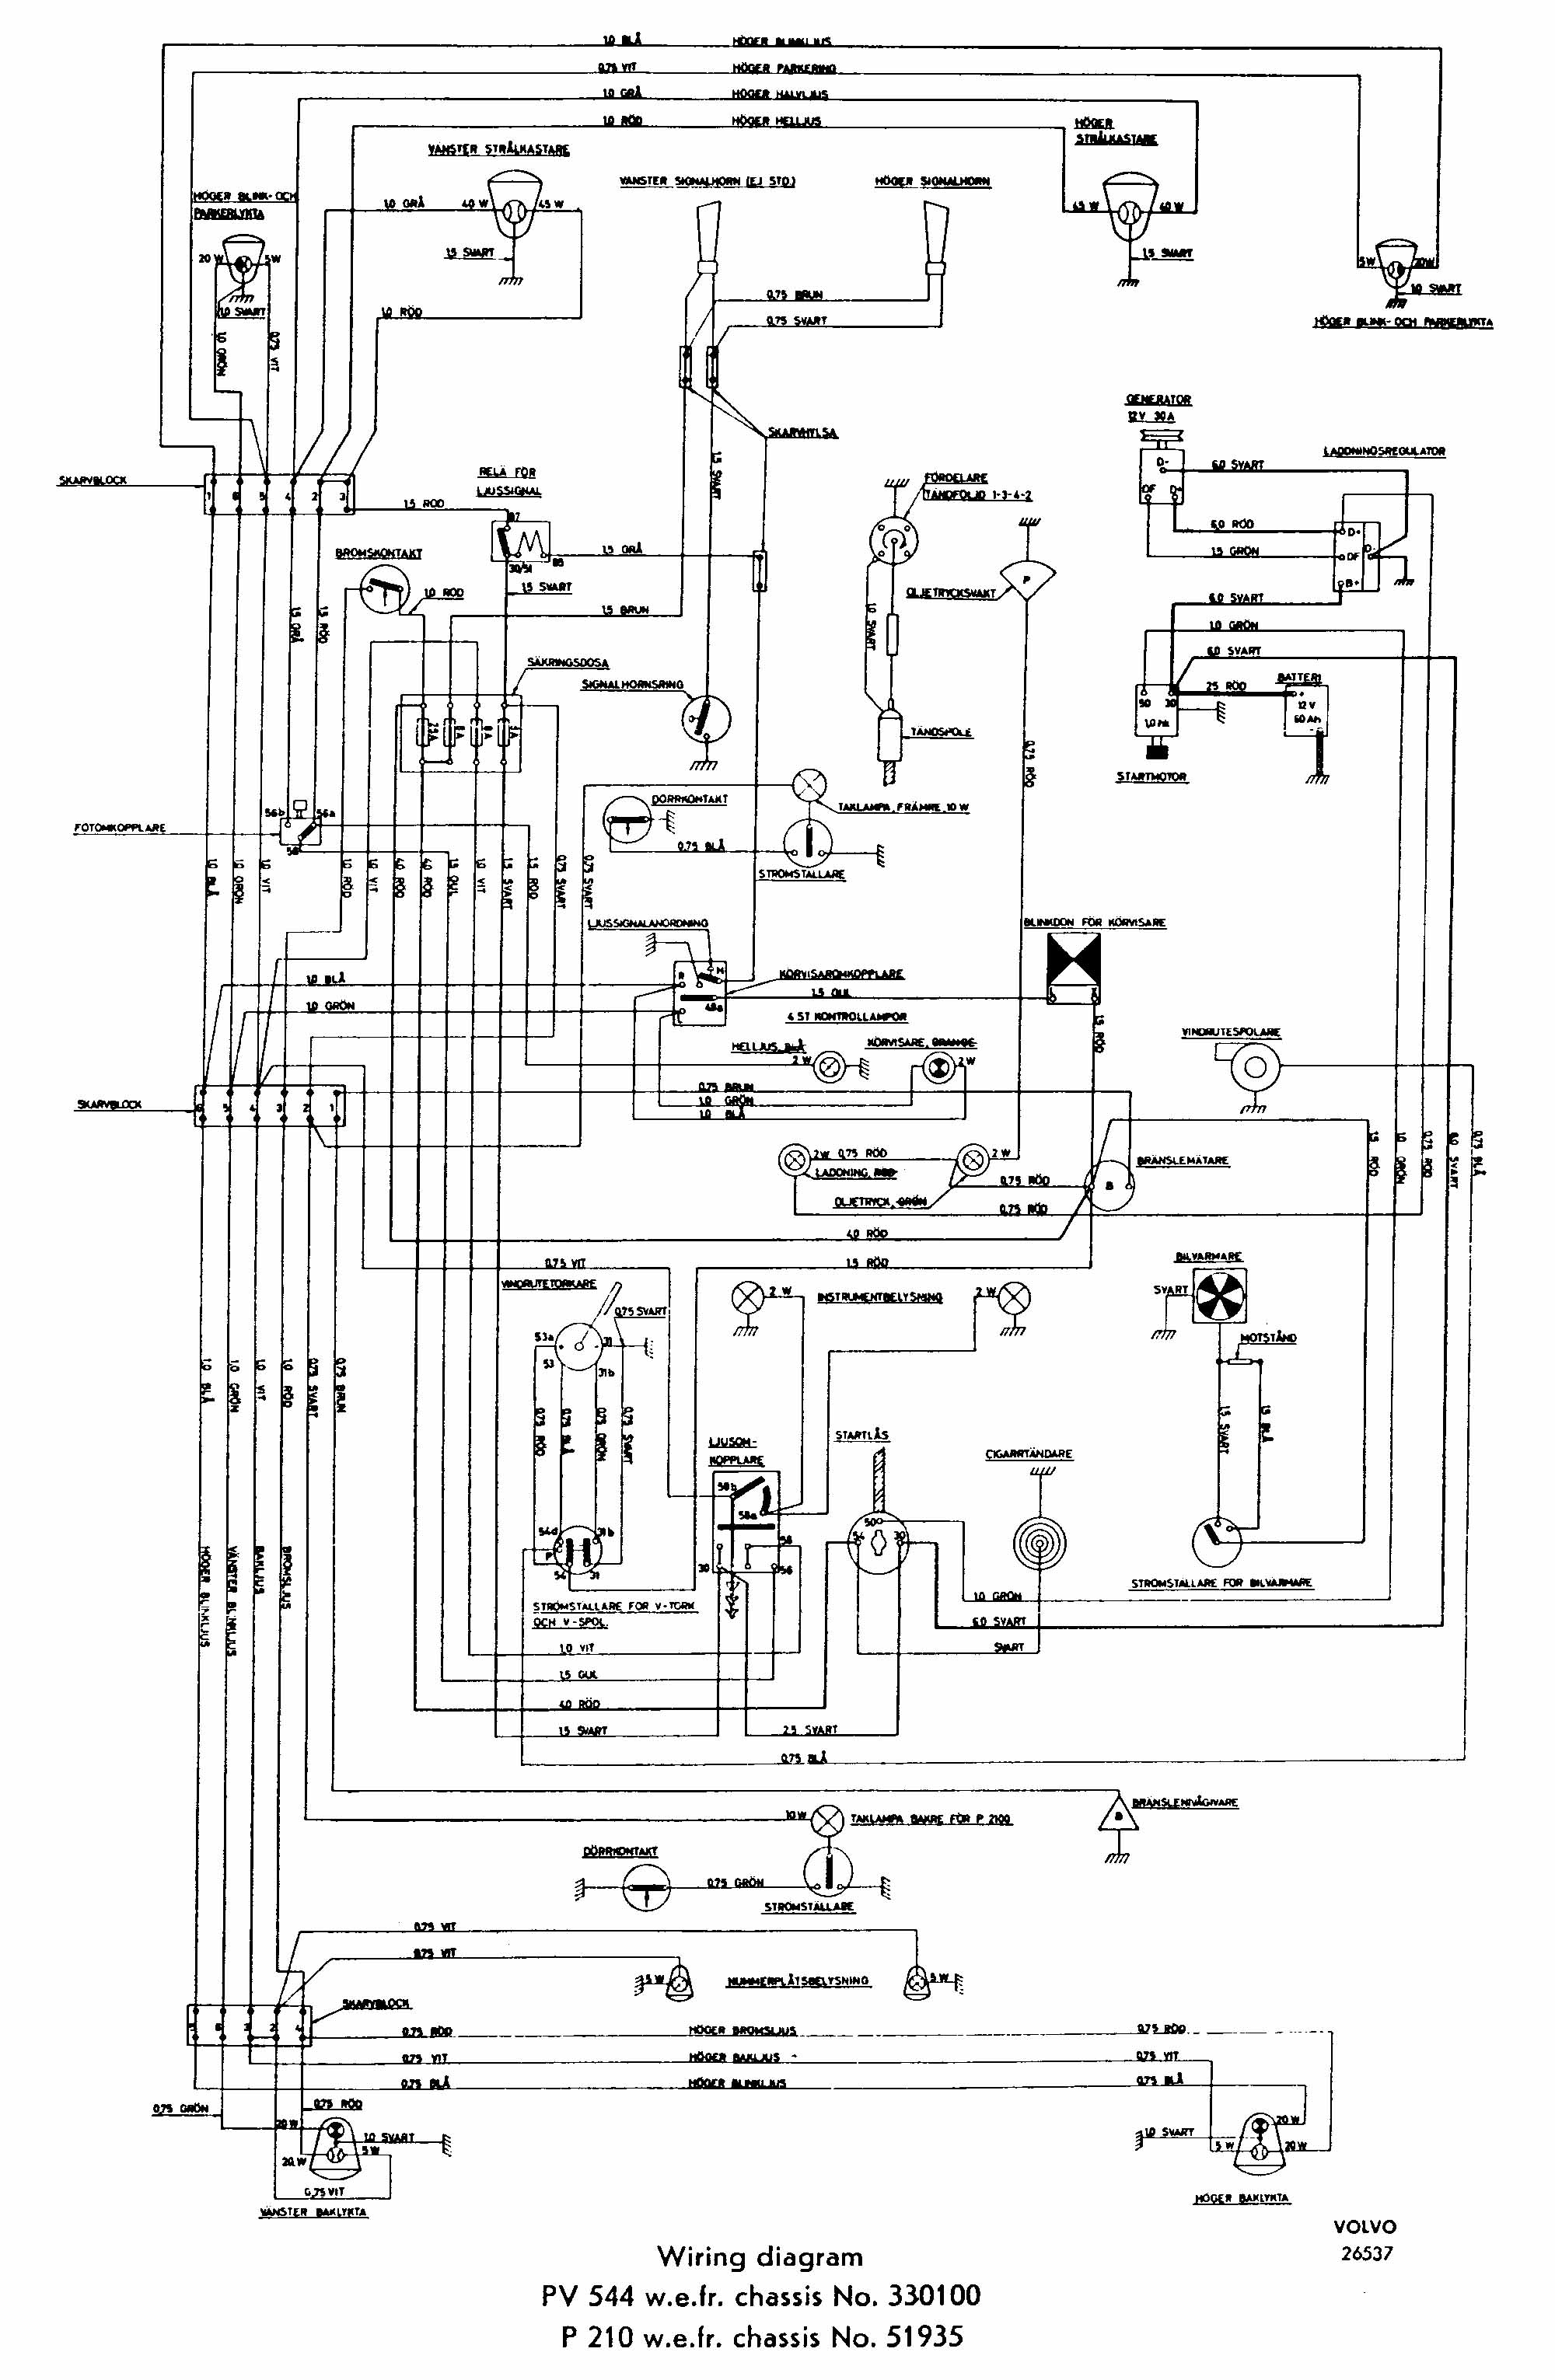 1965 Volvo 544 Fuse Box Electrical Diagrams Forum Pimped Quantum S And Siyaya Pictures Sw Em Fuses Allocation Troubleshooting Rh Com